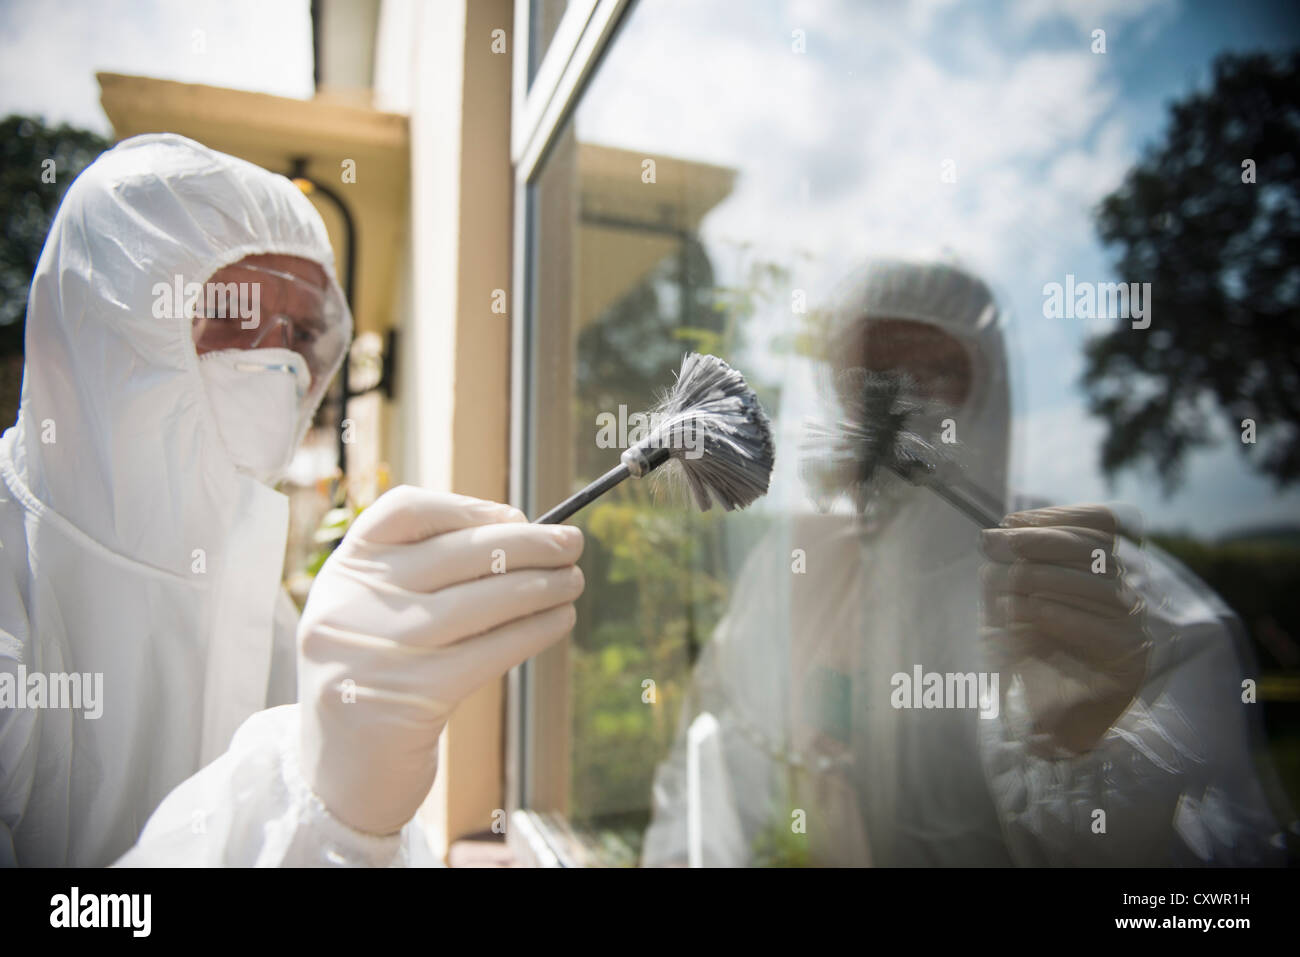 Forensic scientist dusting window - Stock Image